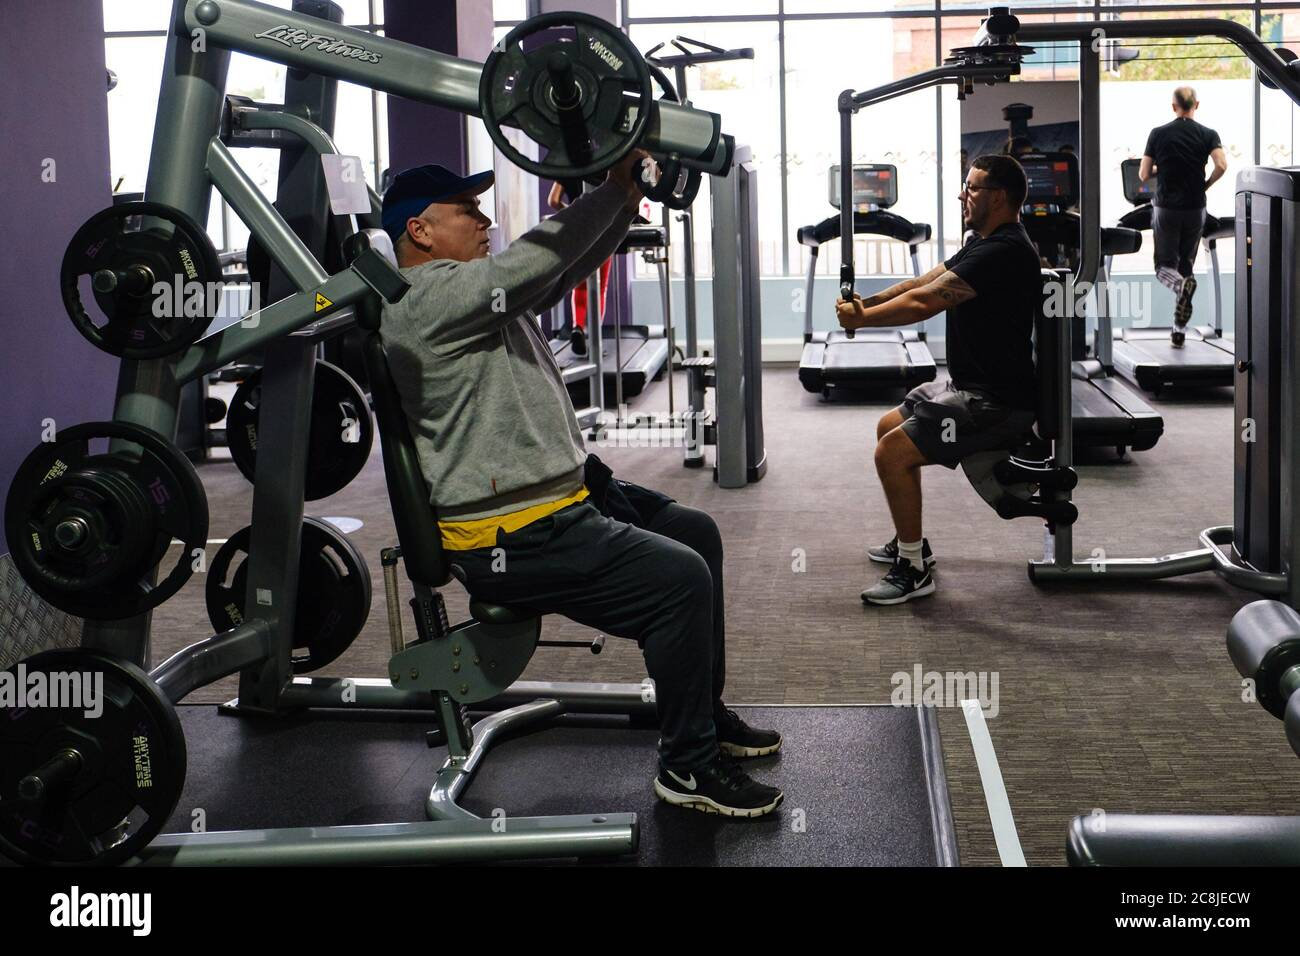 Anytime Fitness Worthing Uk 25th July 2020 People Return As Gyms Reopen With Pre Booked Slots When tybalt kills mercutio, romeo shifts into this violent mode. alamy